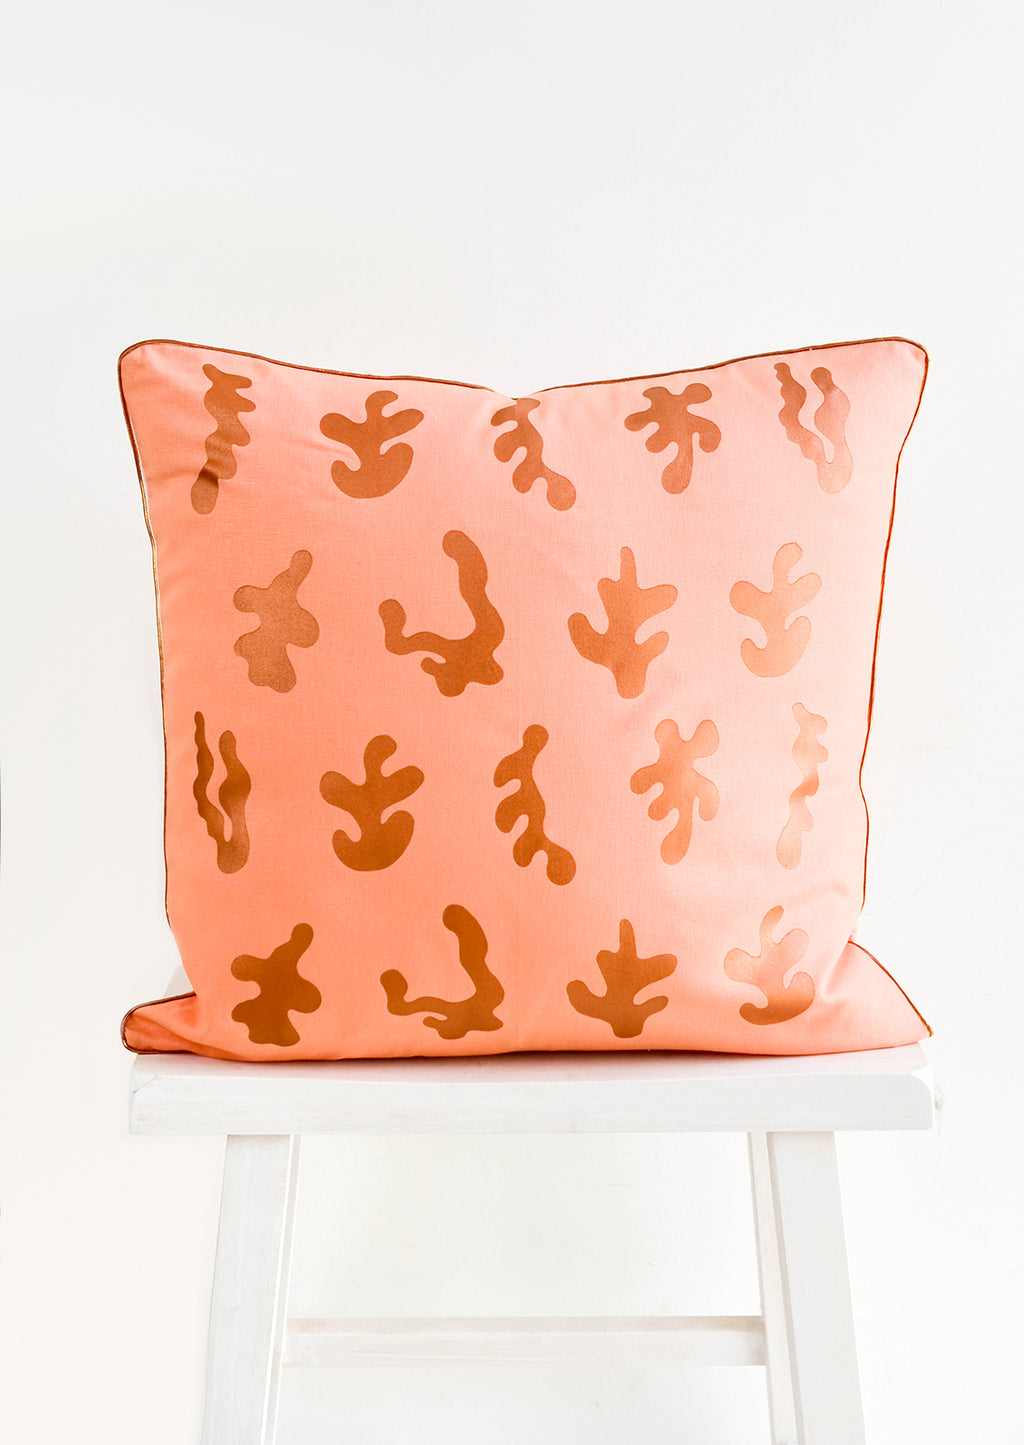 1: Square throw pillow in peach color with copper, screen printed seaweed shapes and copper trim